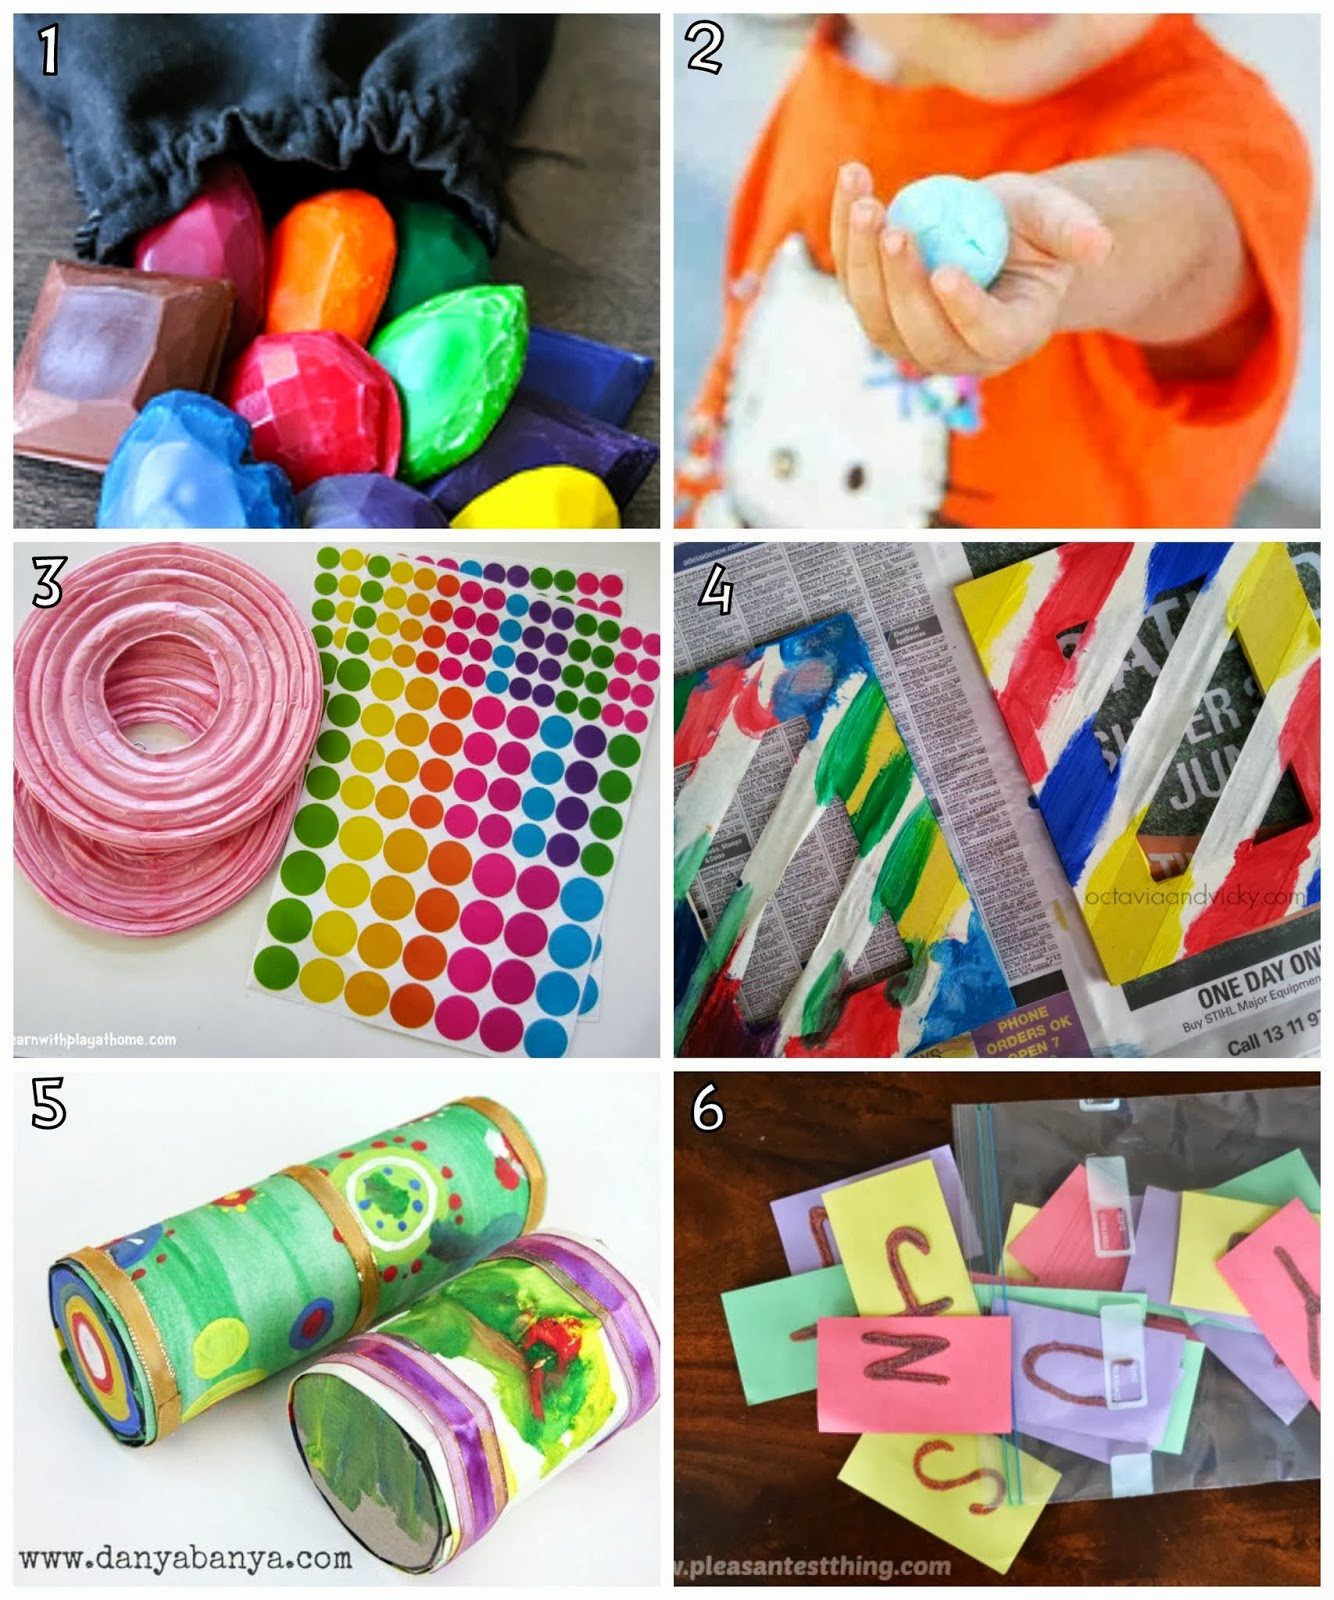 DIY Games For Toddlers  Learn with Play at Home 12 fun DIY Activities for kids